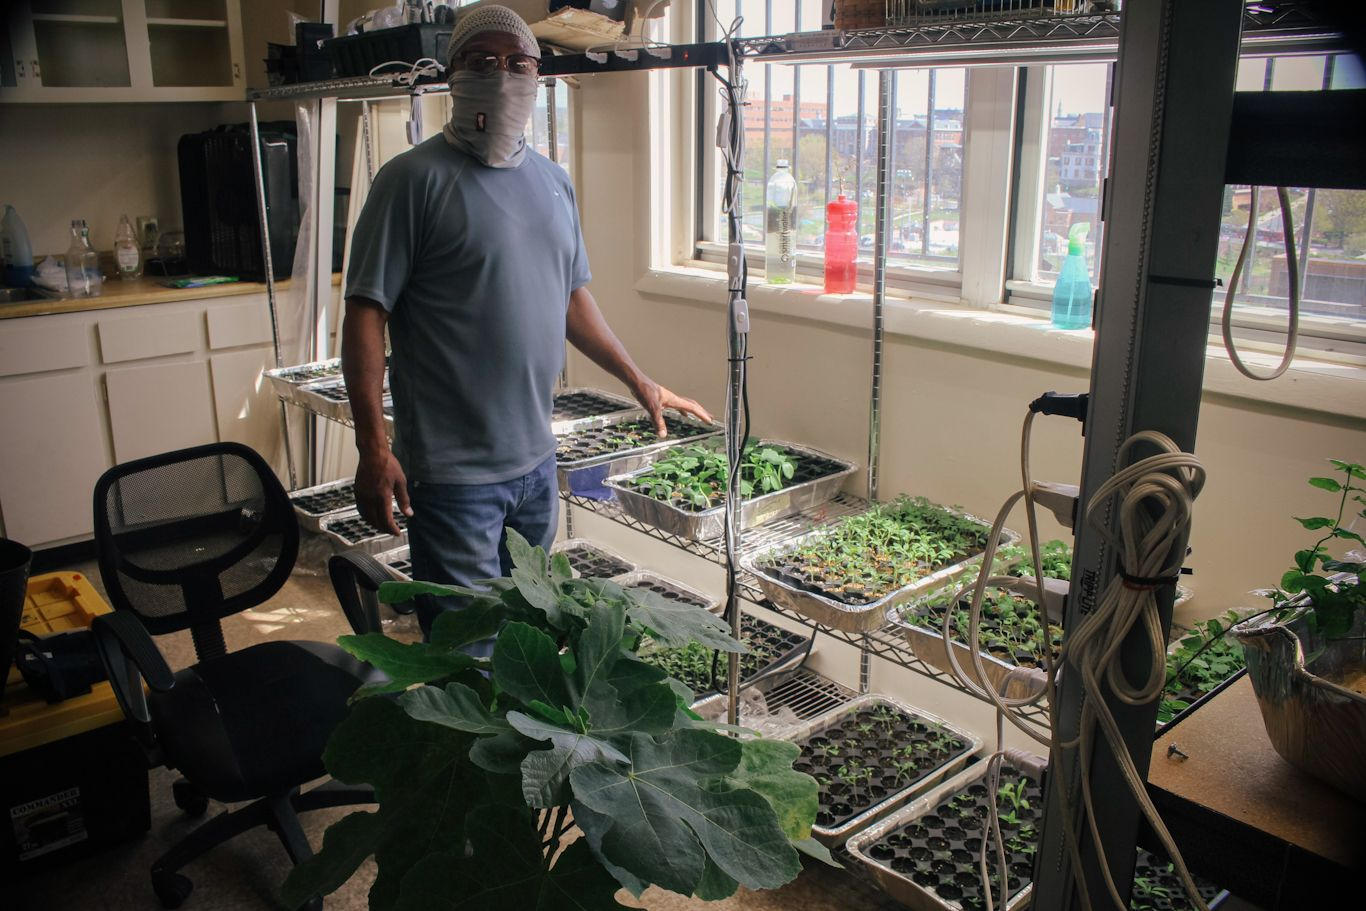 Boe in the seeding room standing among freshly sprouting herbs and veggies.